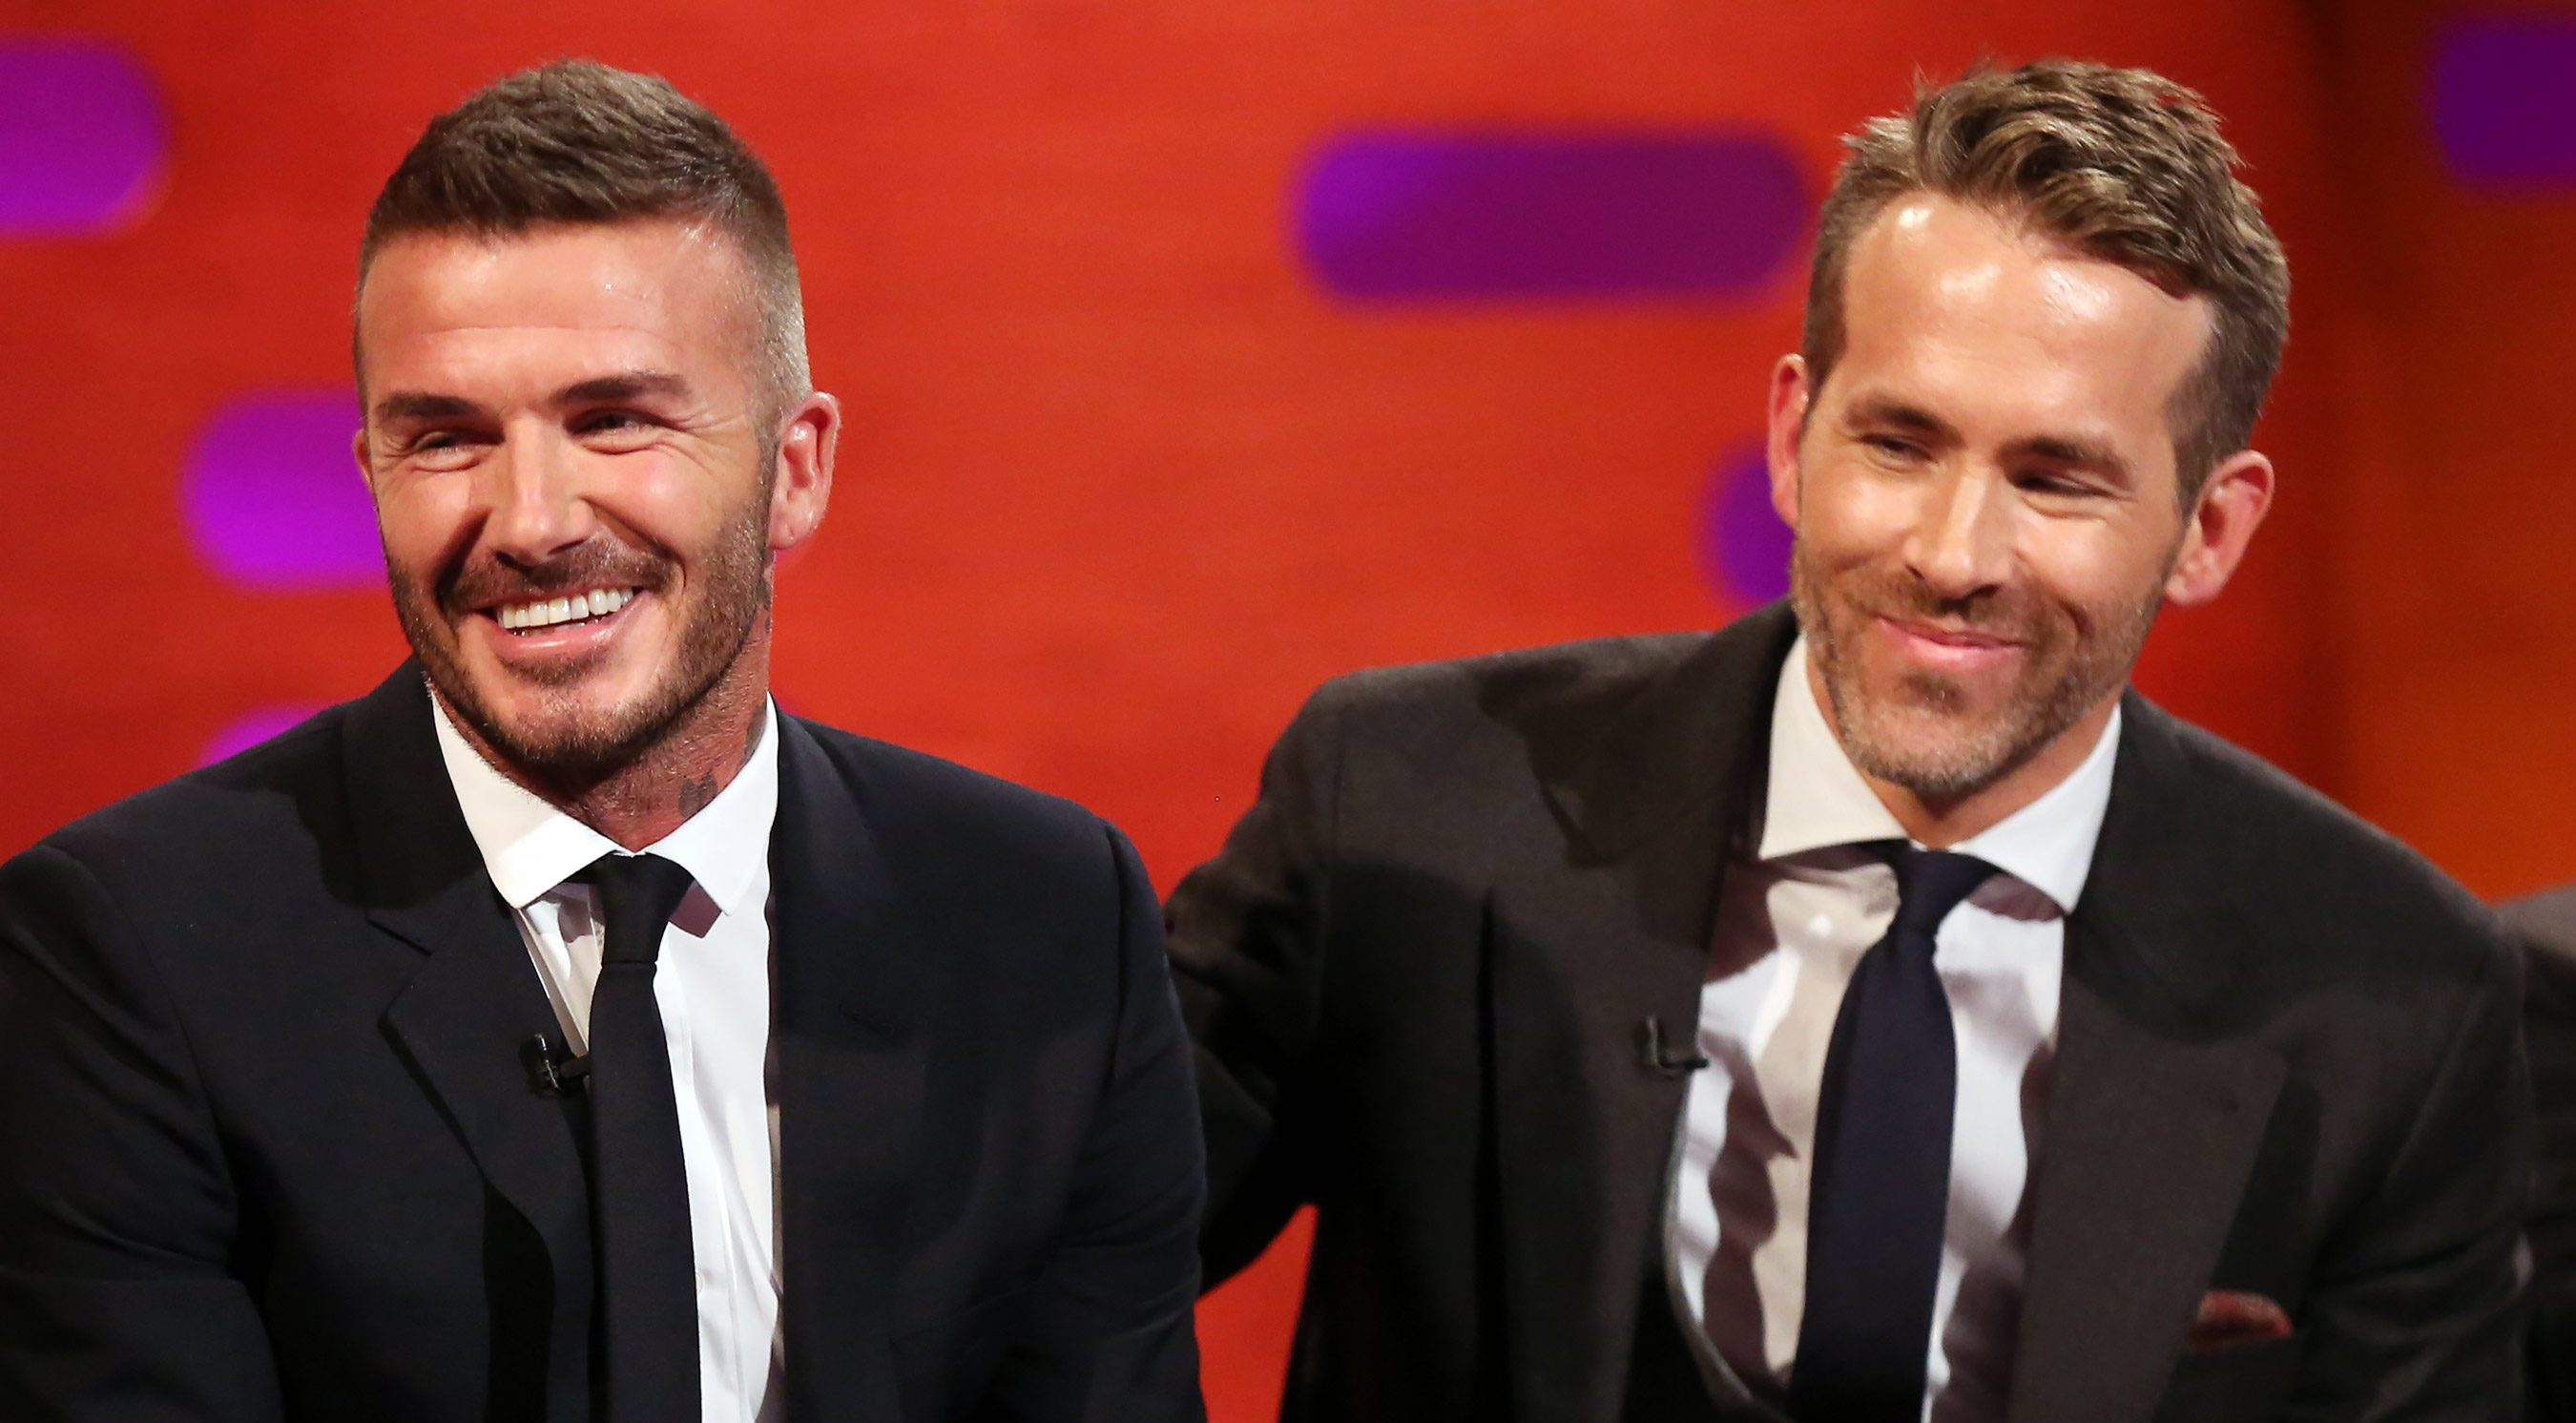 David Beckham (left), and Ryan Reynolds during filming for the Graham Norton Show at BBC Studioworks in London, to be aired on BBC One on Friday. PRESS ASSOCIATION. Picture date: Thursday May 10, 2018. Photo credit should read: PA Images on behalf of So TV (Photo by Isabel Infantes/PA Images via Getty Images)